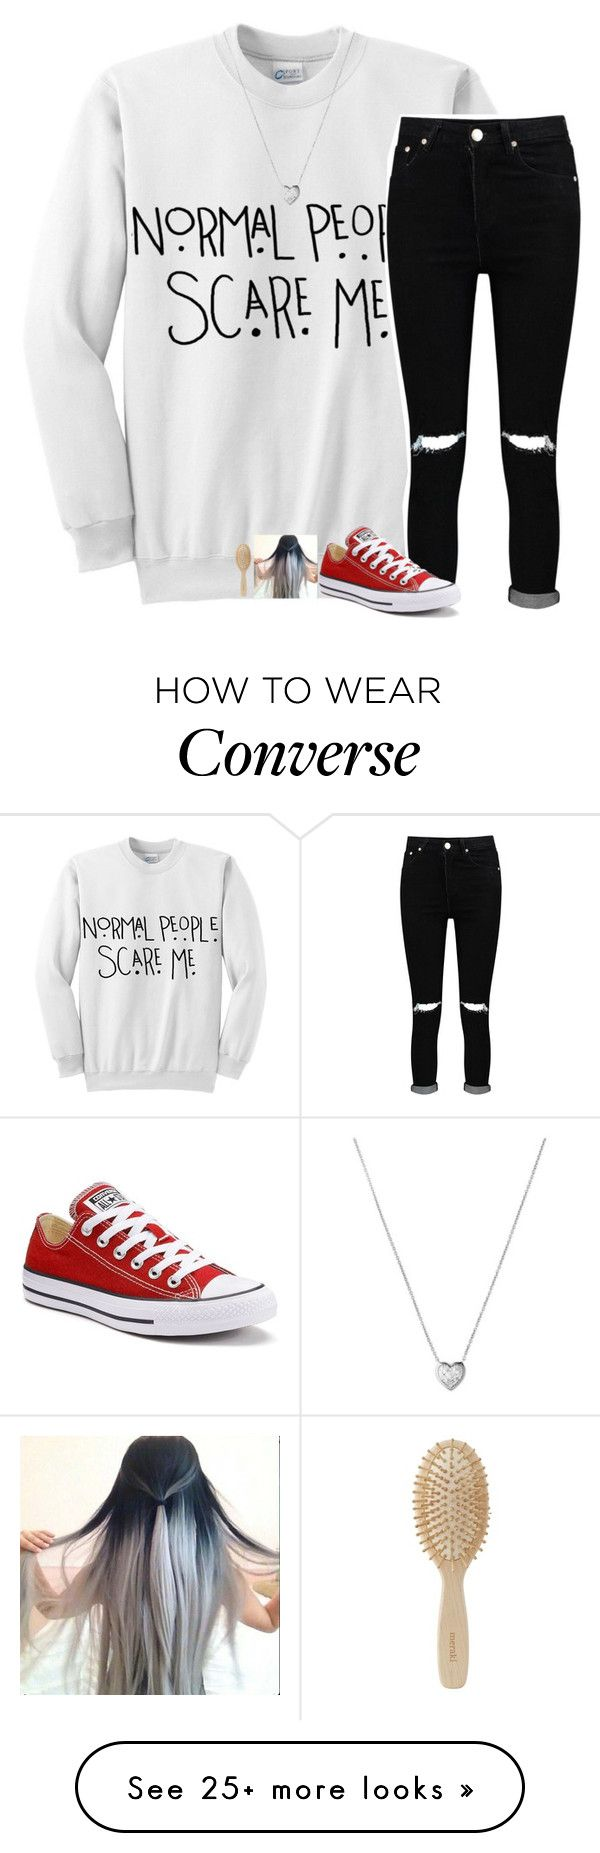 """""""-- normal people scare me"""" by jxst-like-galaxy on Polyvore featuring Boohoo, Converse, Links of London and Meraki"""